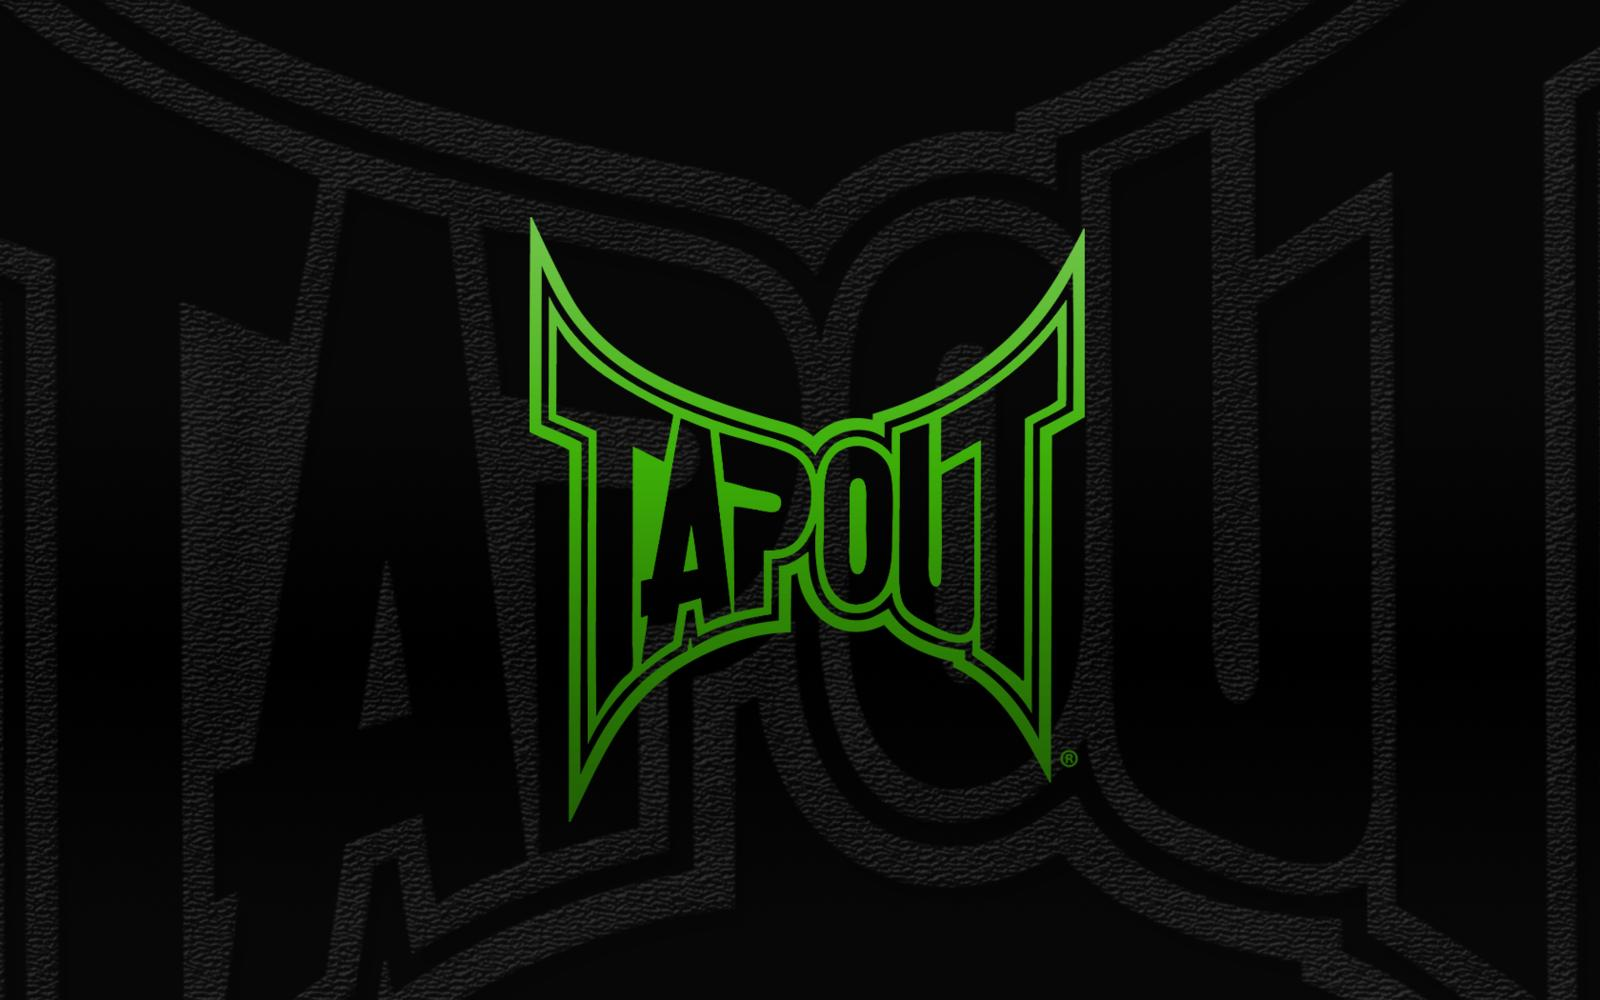 tapout wallpaper for facebook - photo #2